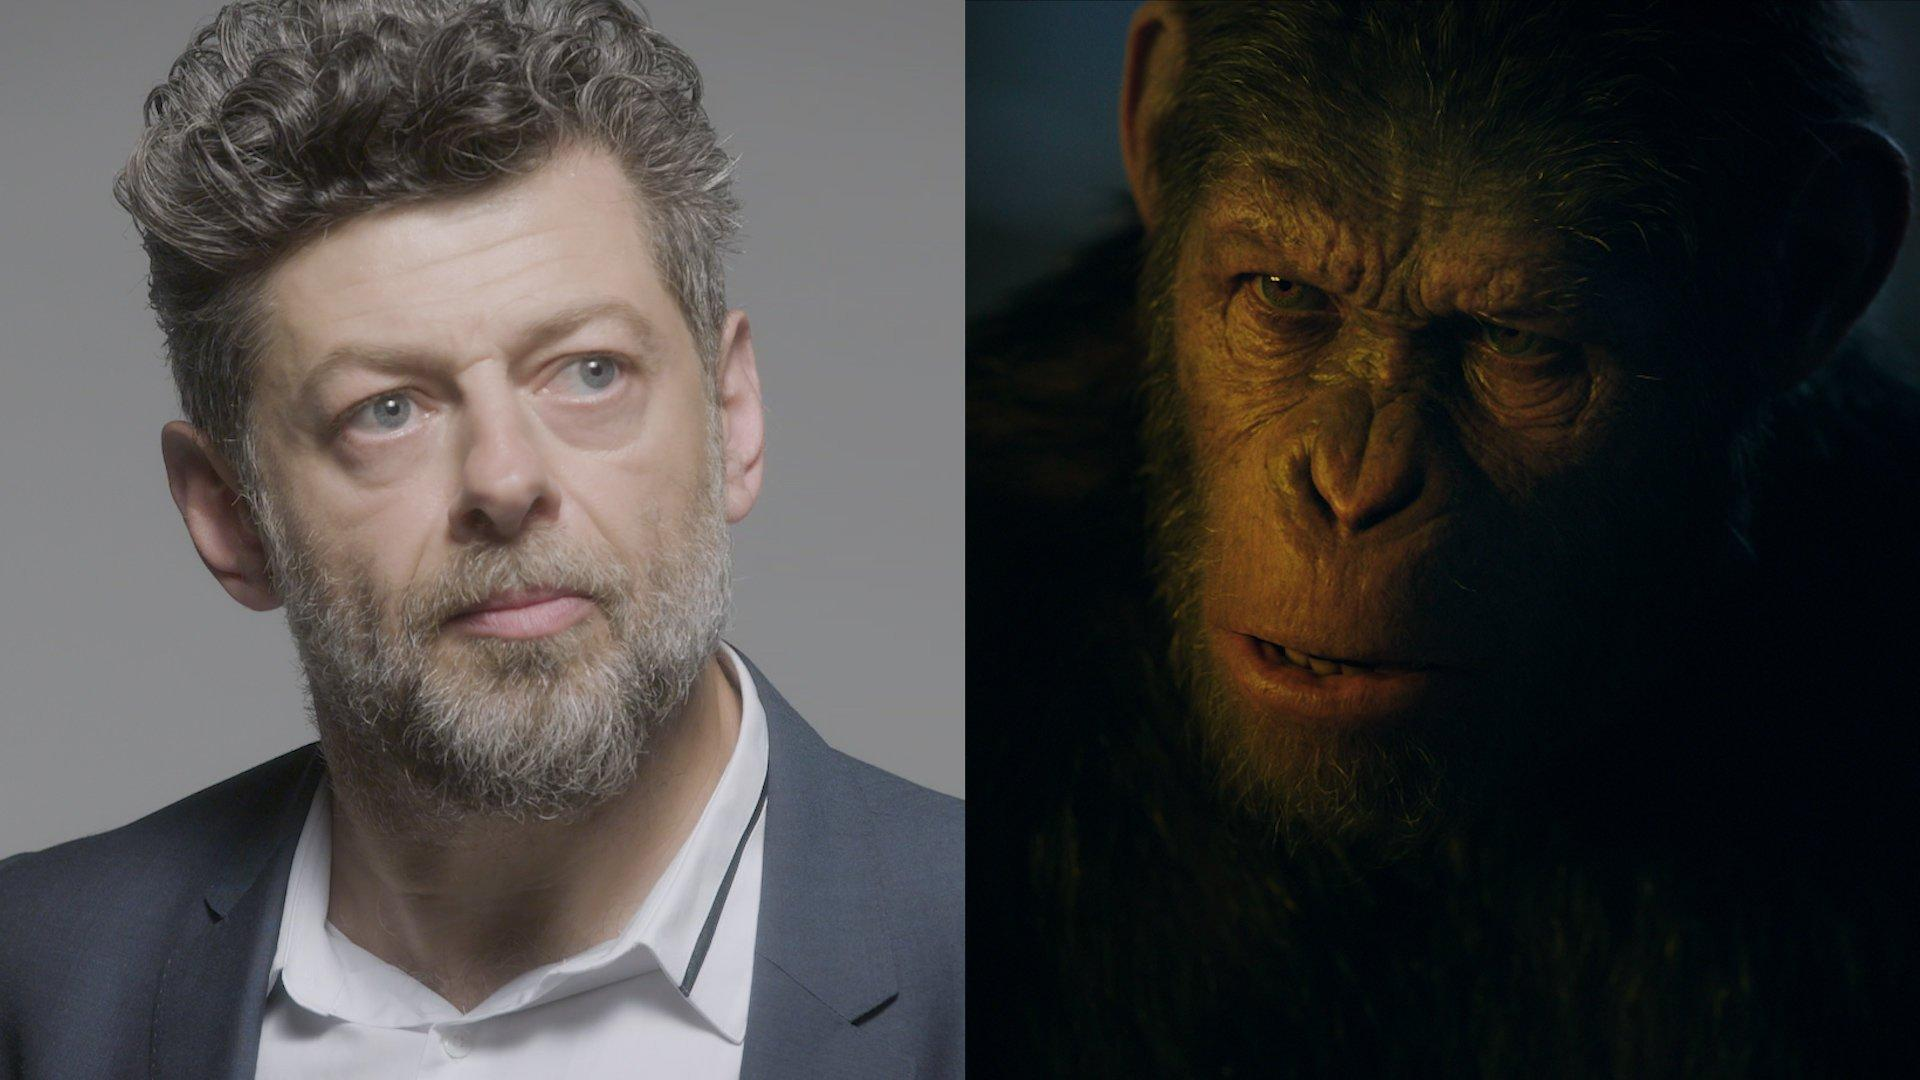 1920x1080 - Andy Serkis Wallpapers 19